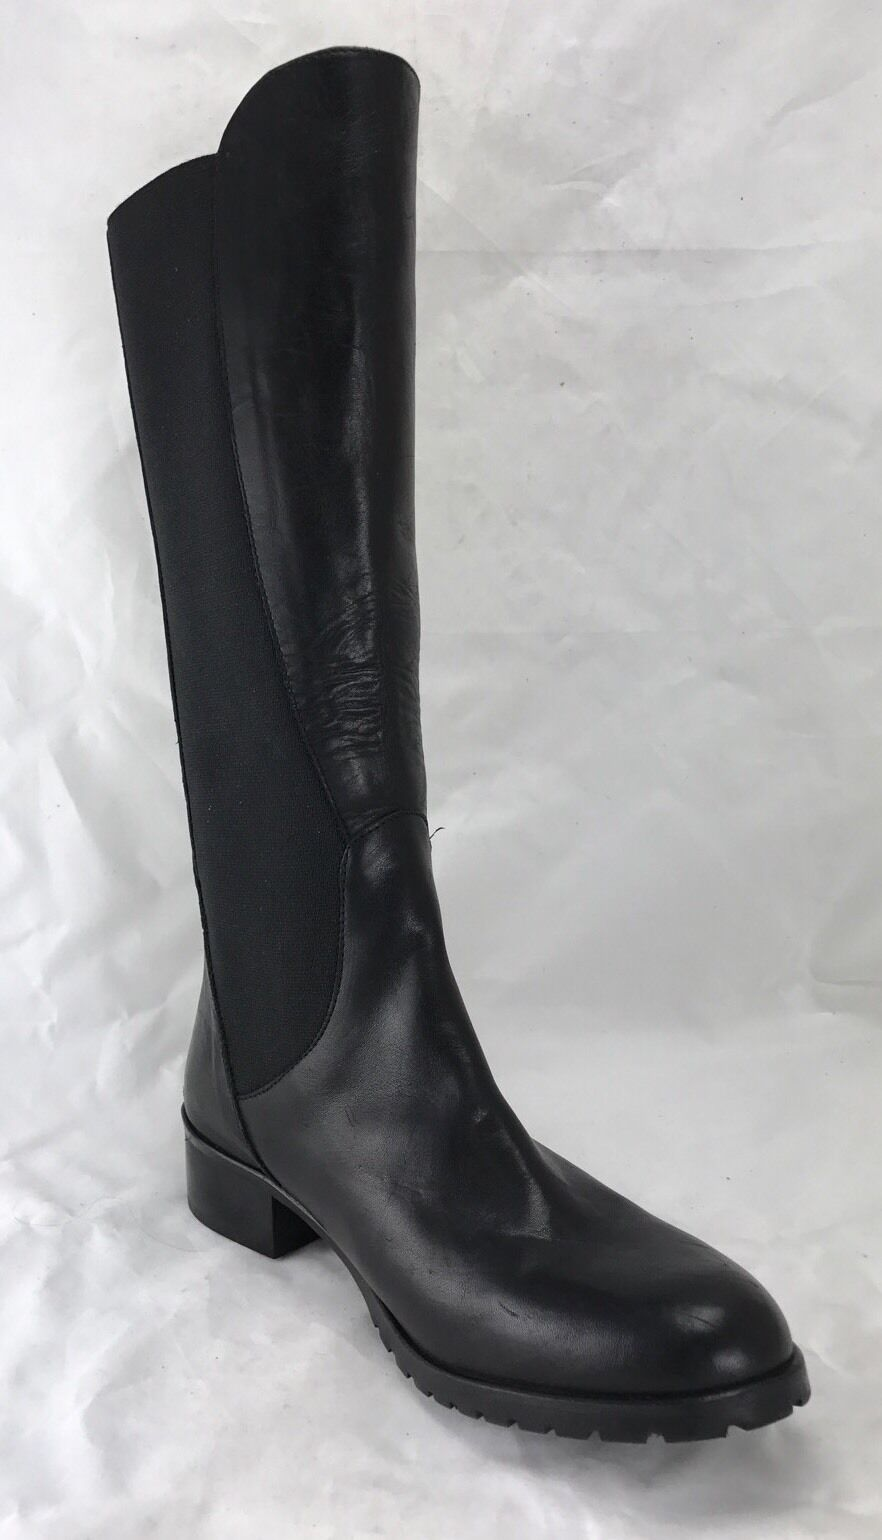 Charles David Women's Black Leather Tall Riding Boots Size 9.5 s10/24